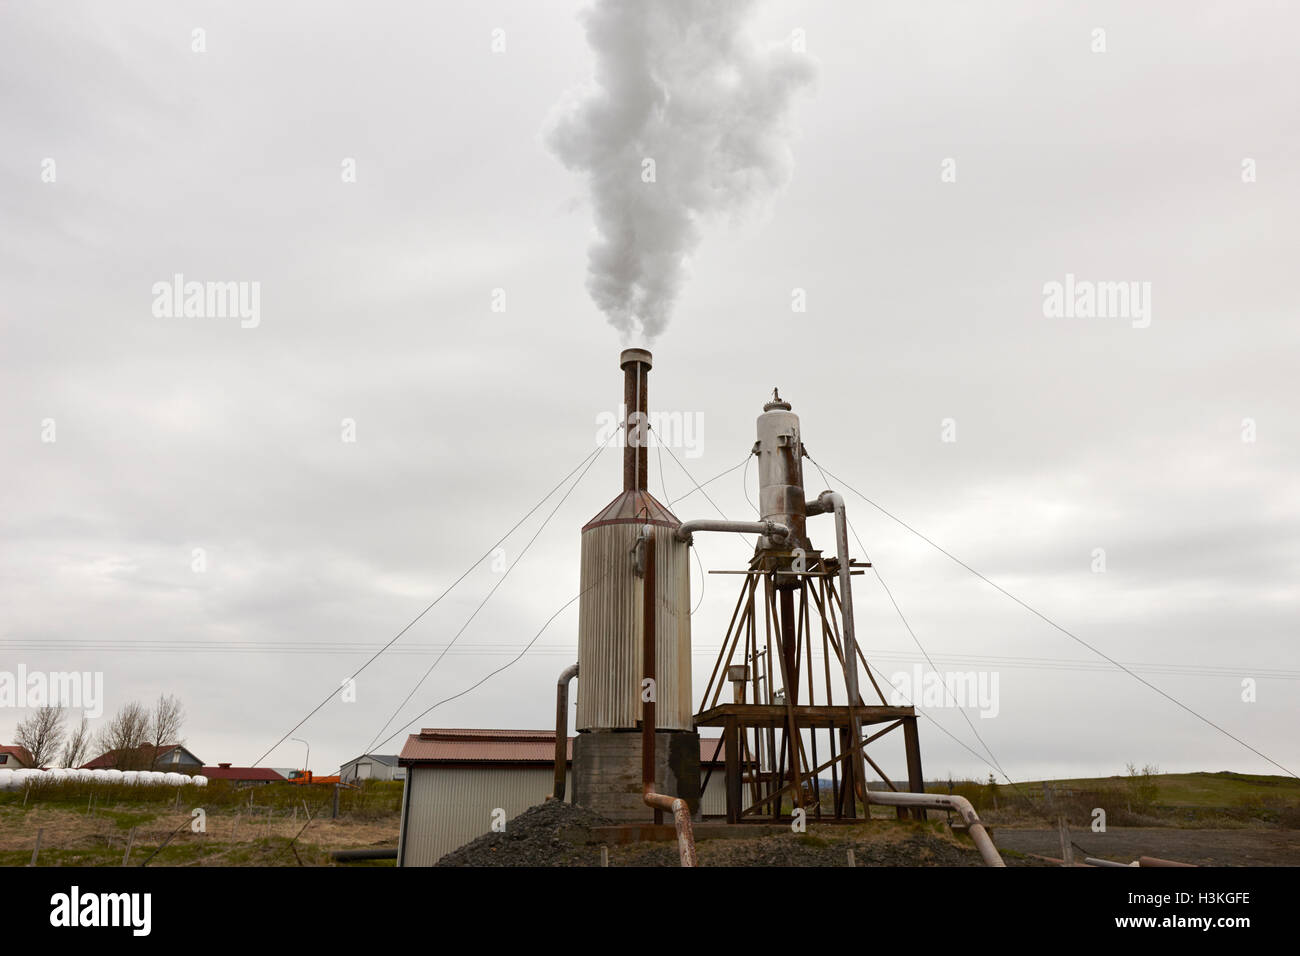 small rural community geothermal energy plant rural southern Iceland - Stock Image